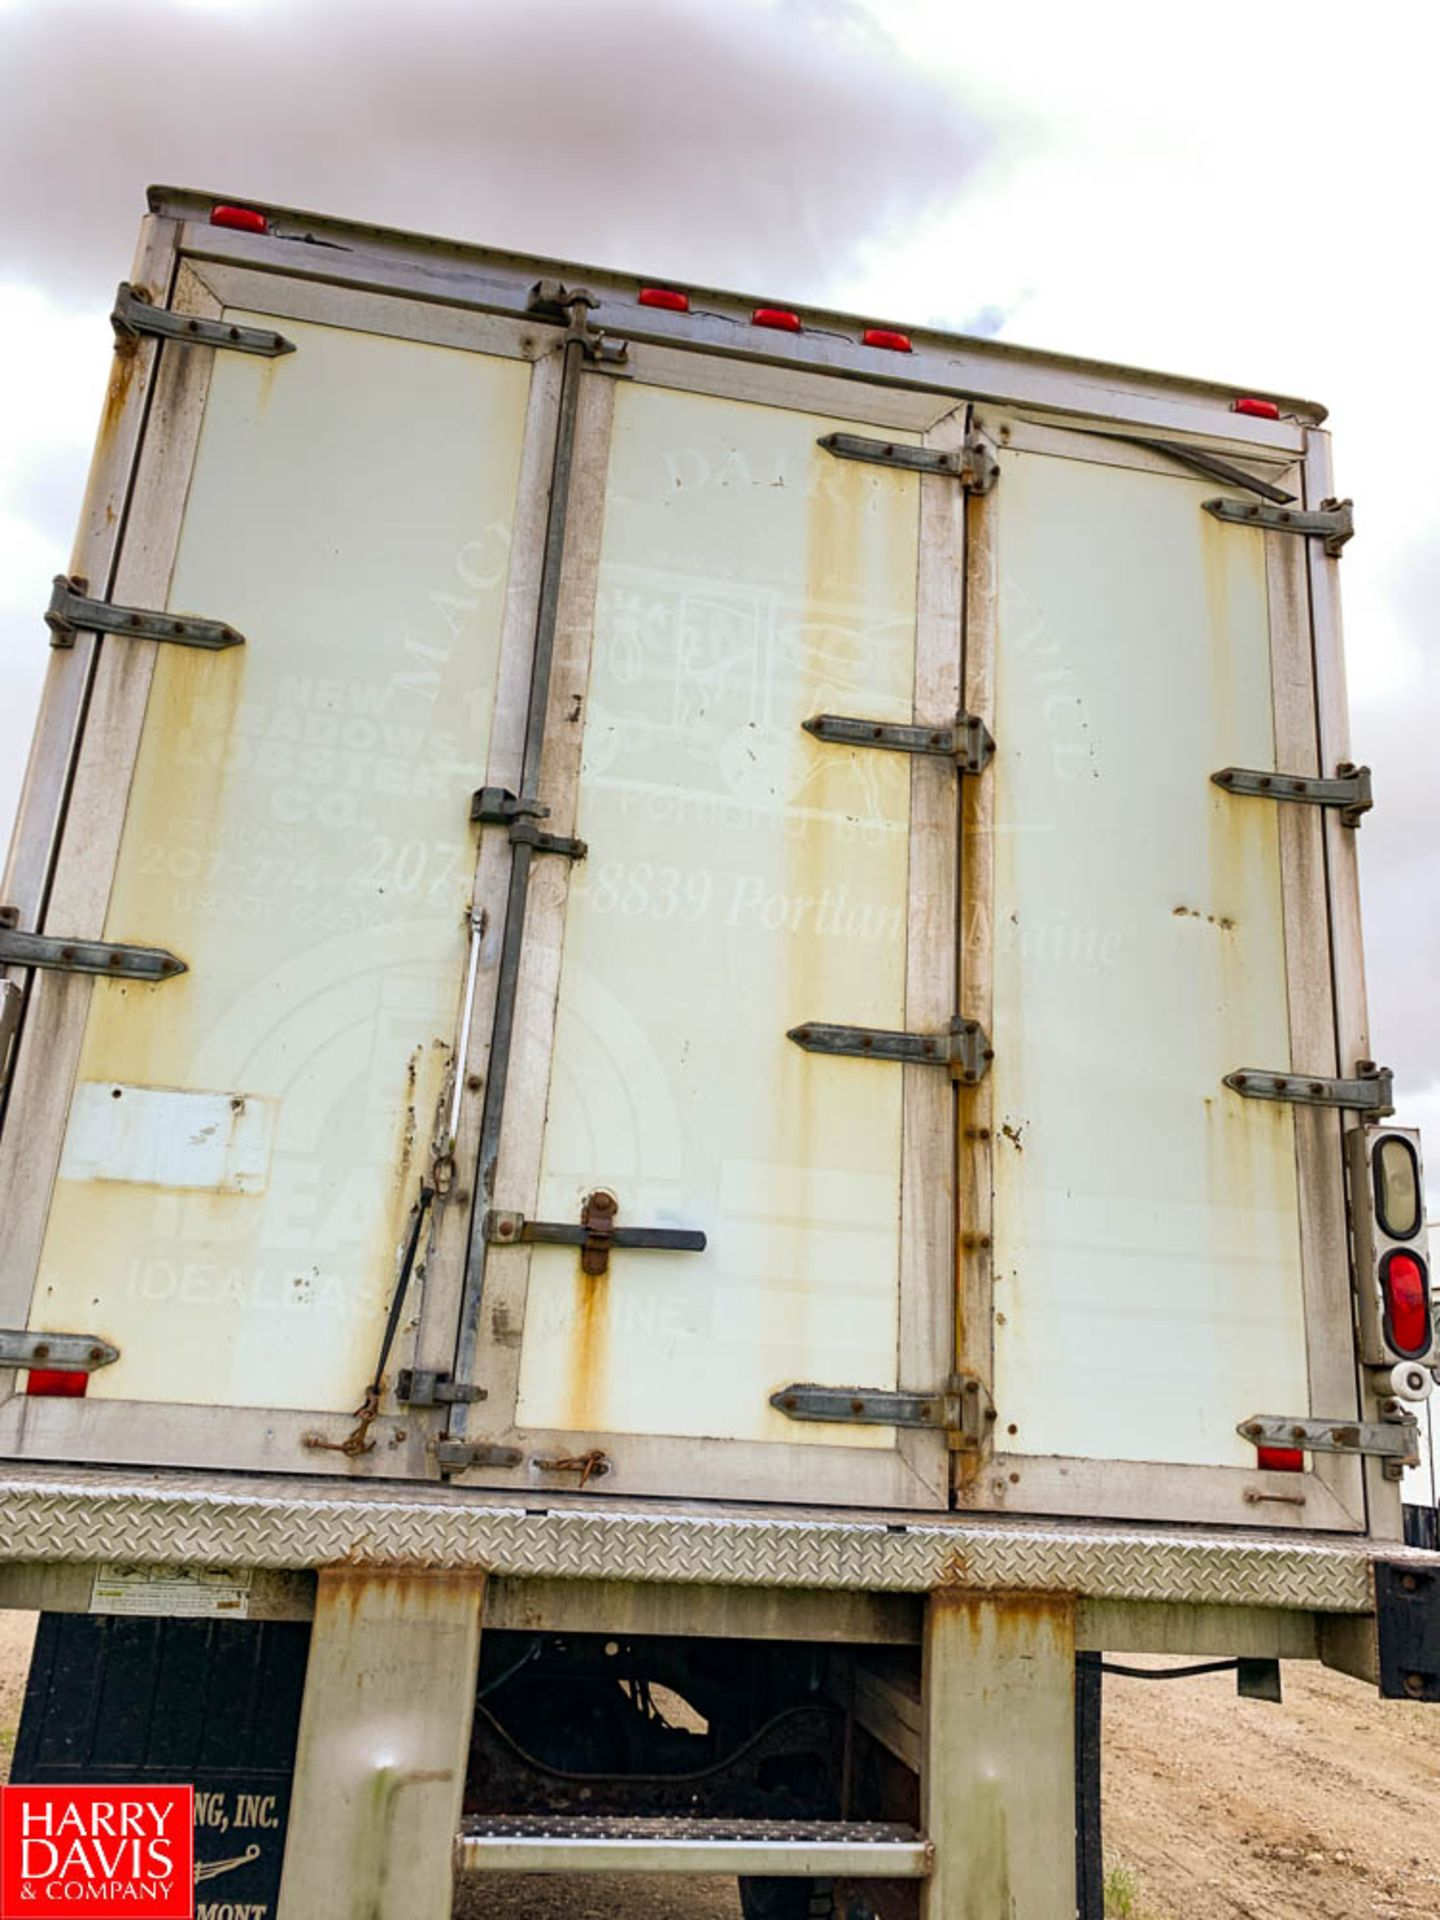 1999 International 18' Refrigerated Delivery Truck Model: 4900, 33,000 GVWR, with DT466E Diesel, - Image 3 of 7